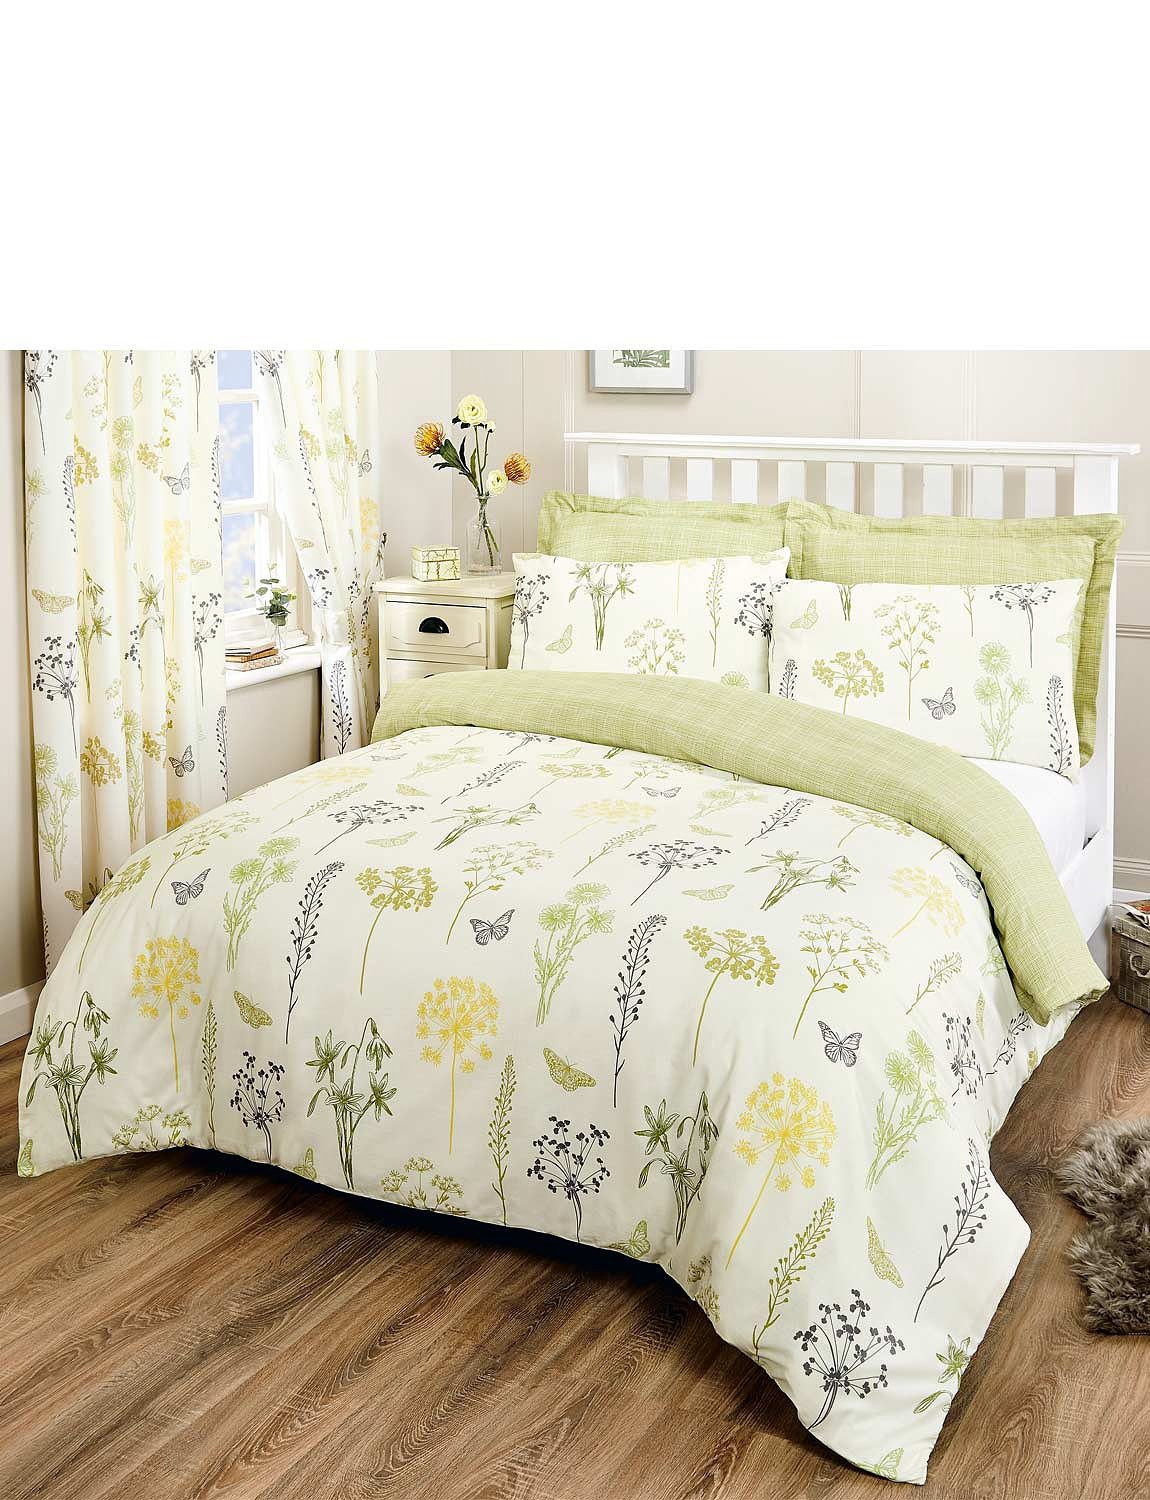 bath bahama turtle tommy bed wayfair quilt reviews set bedding cove pdx home